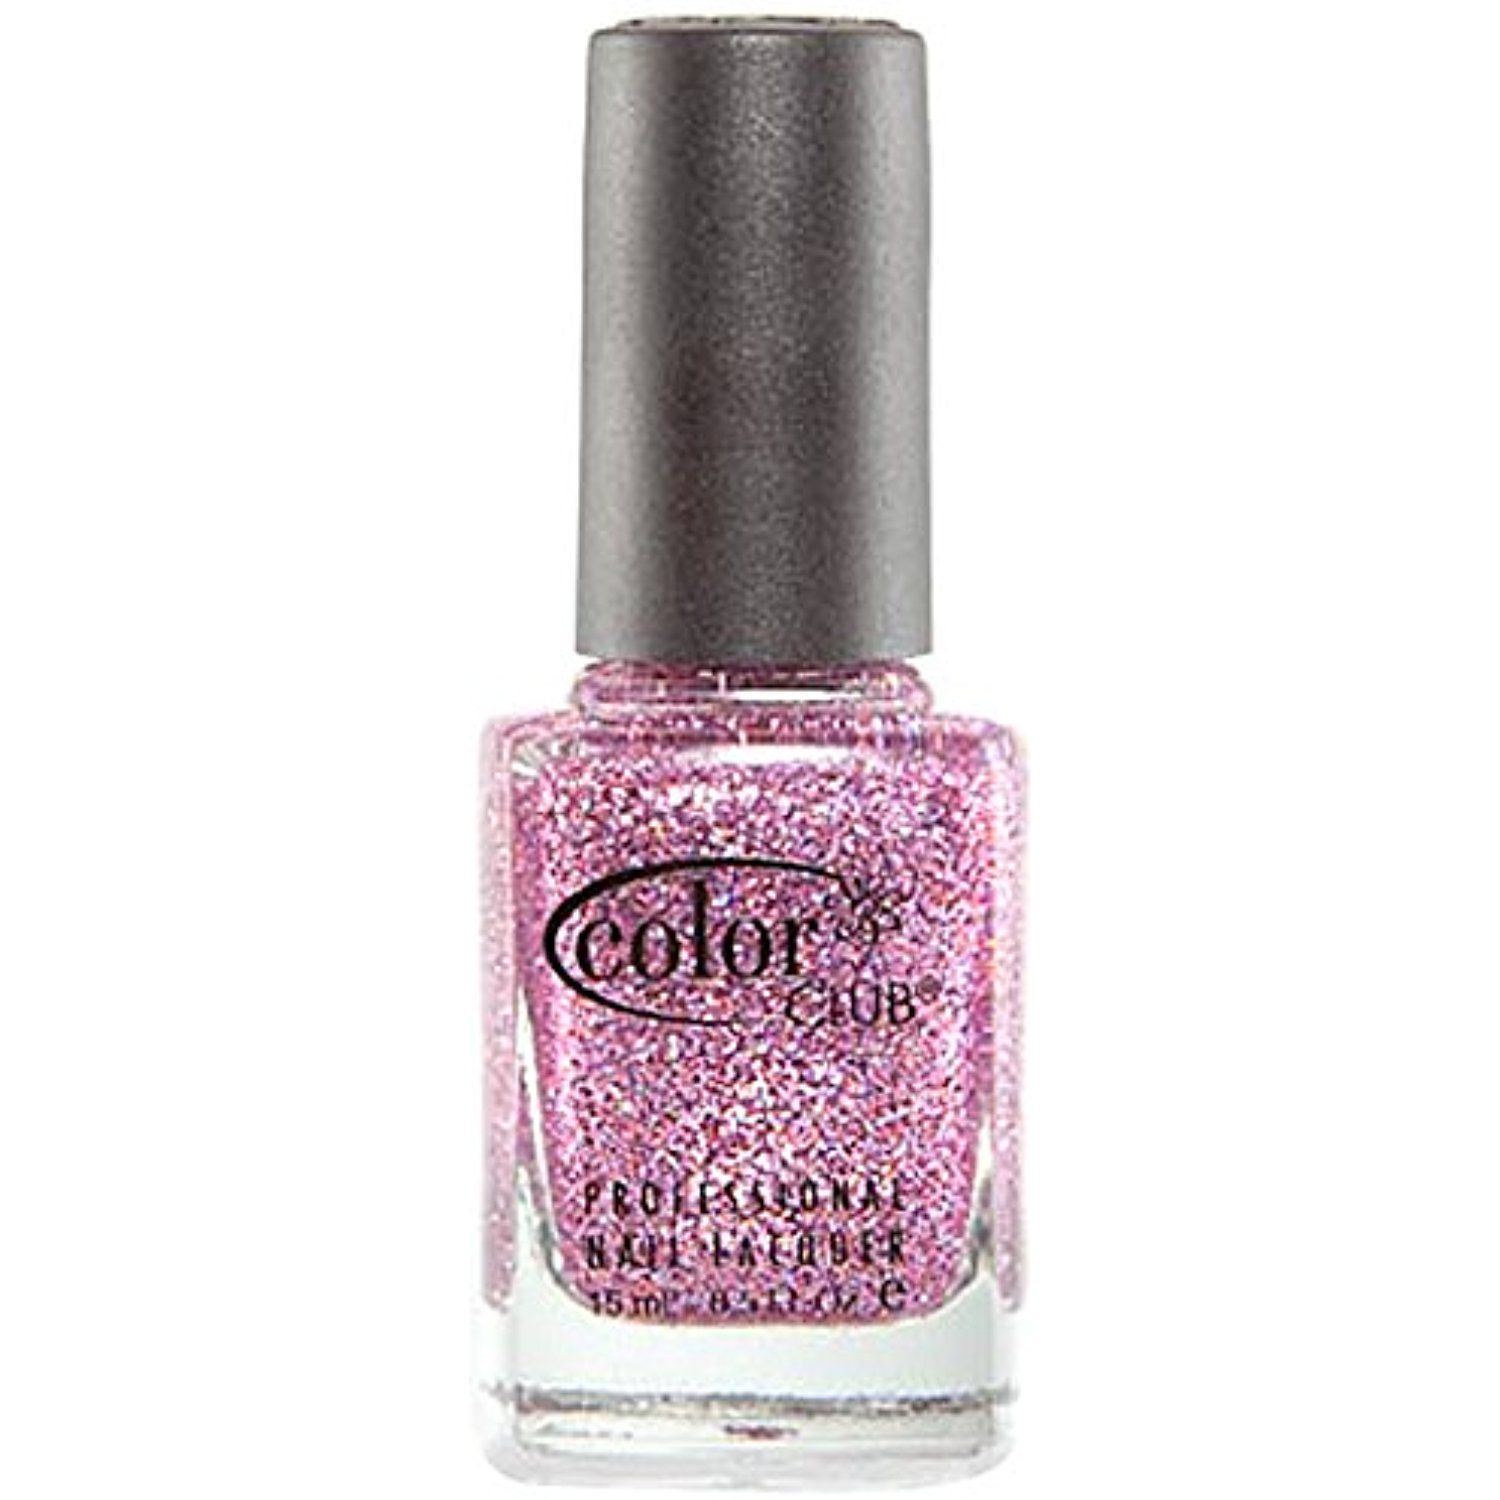 Color Club Mistletoe Glitters Nail Polish, Peppermint, Candy Cane ...